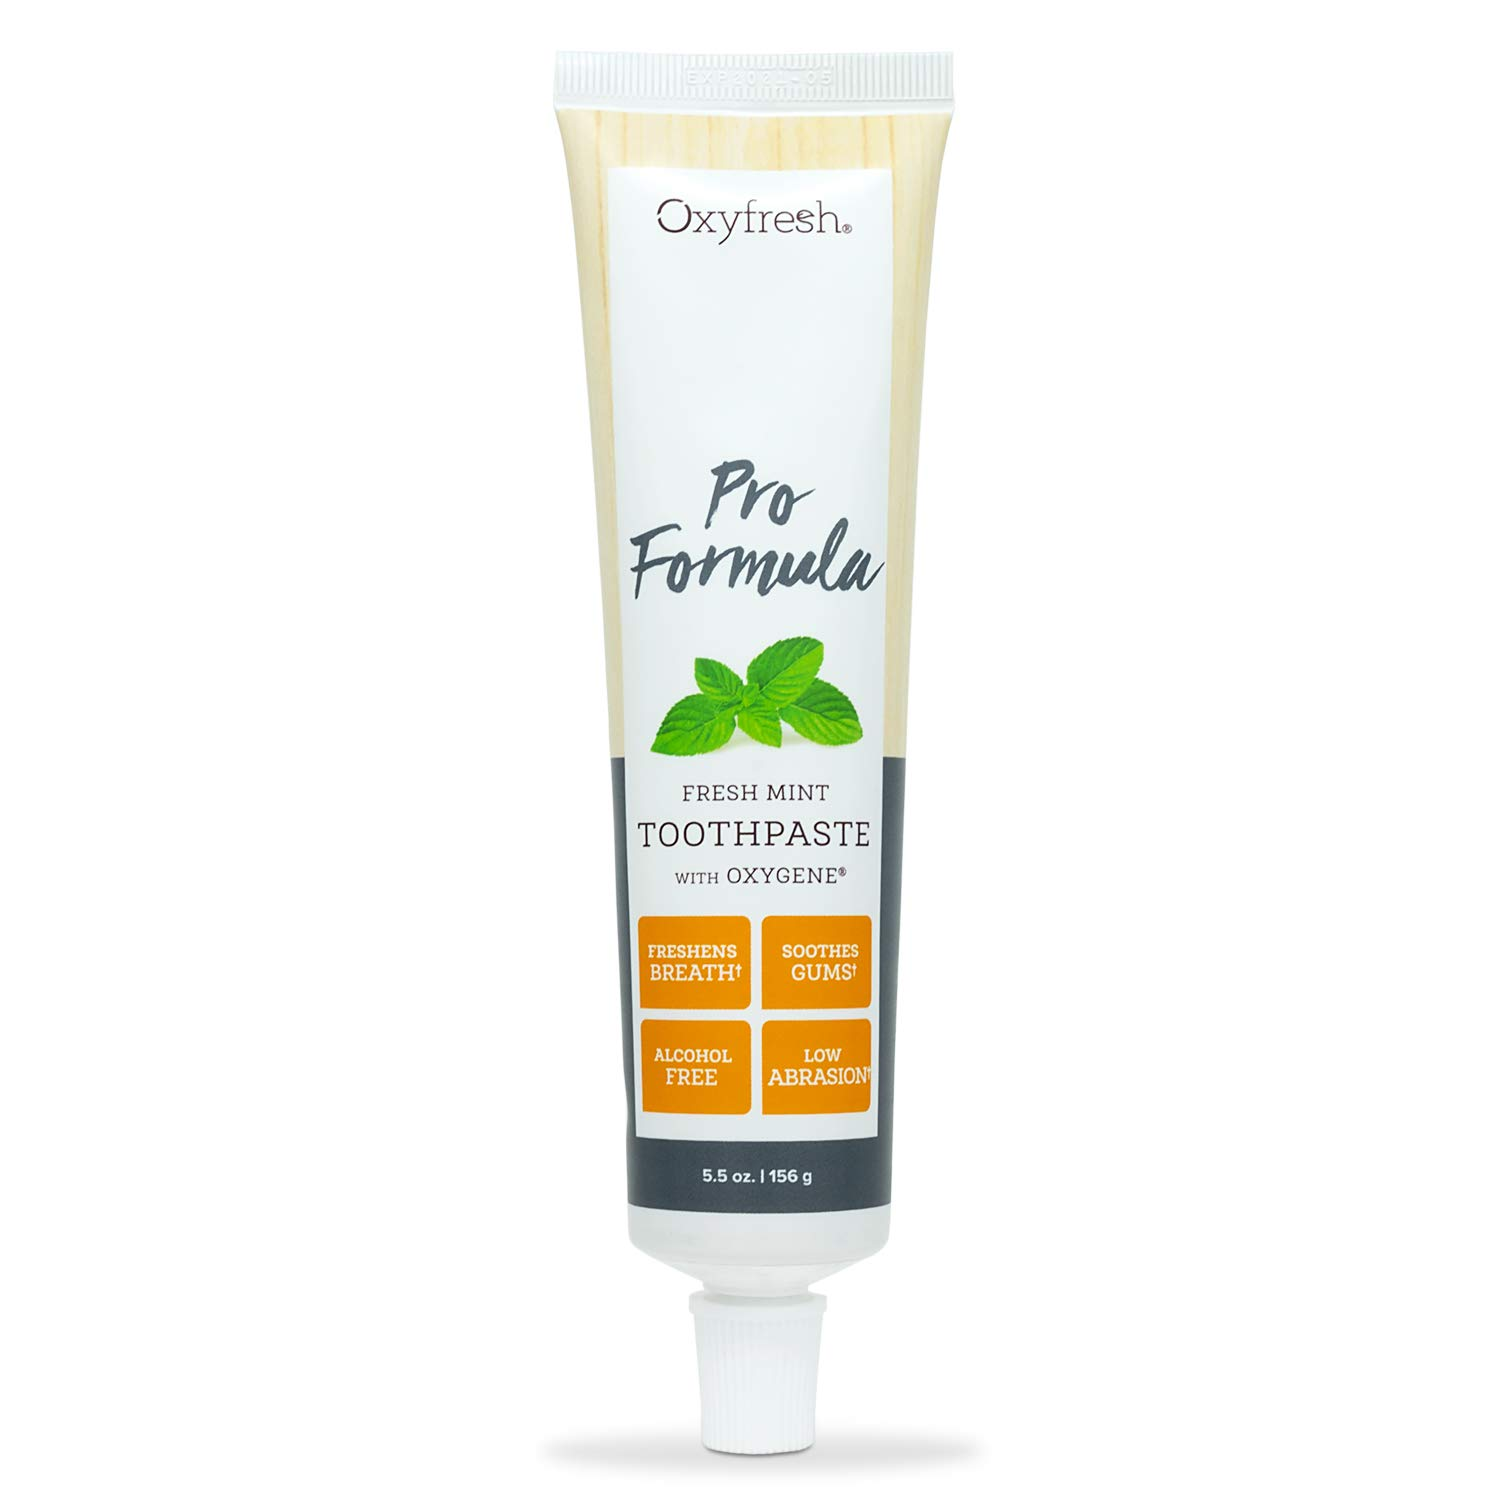 Oxyfresh Pro Formula Fresh Mint Toothpaste – Gentle Low Abrasion - Cosmetic Fluoride Free Formula - Great for Sensitive Teeth and Gums with Natural Essential Oils. 5.5 oz.